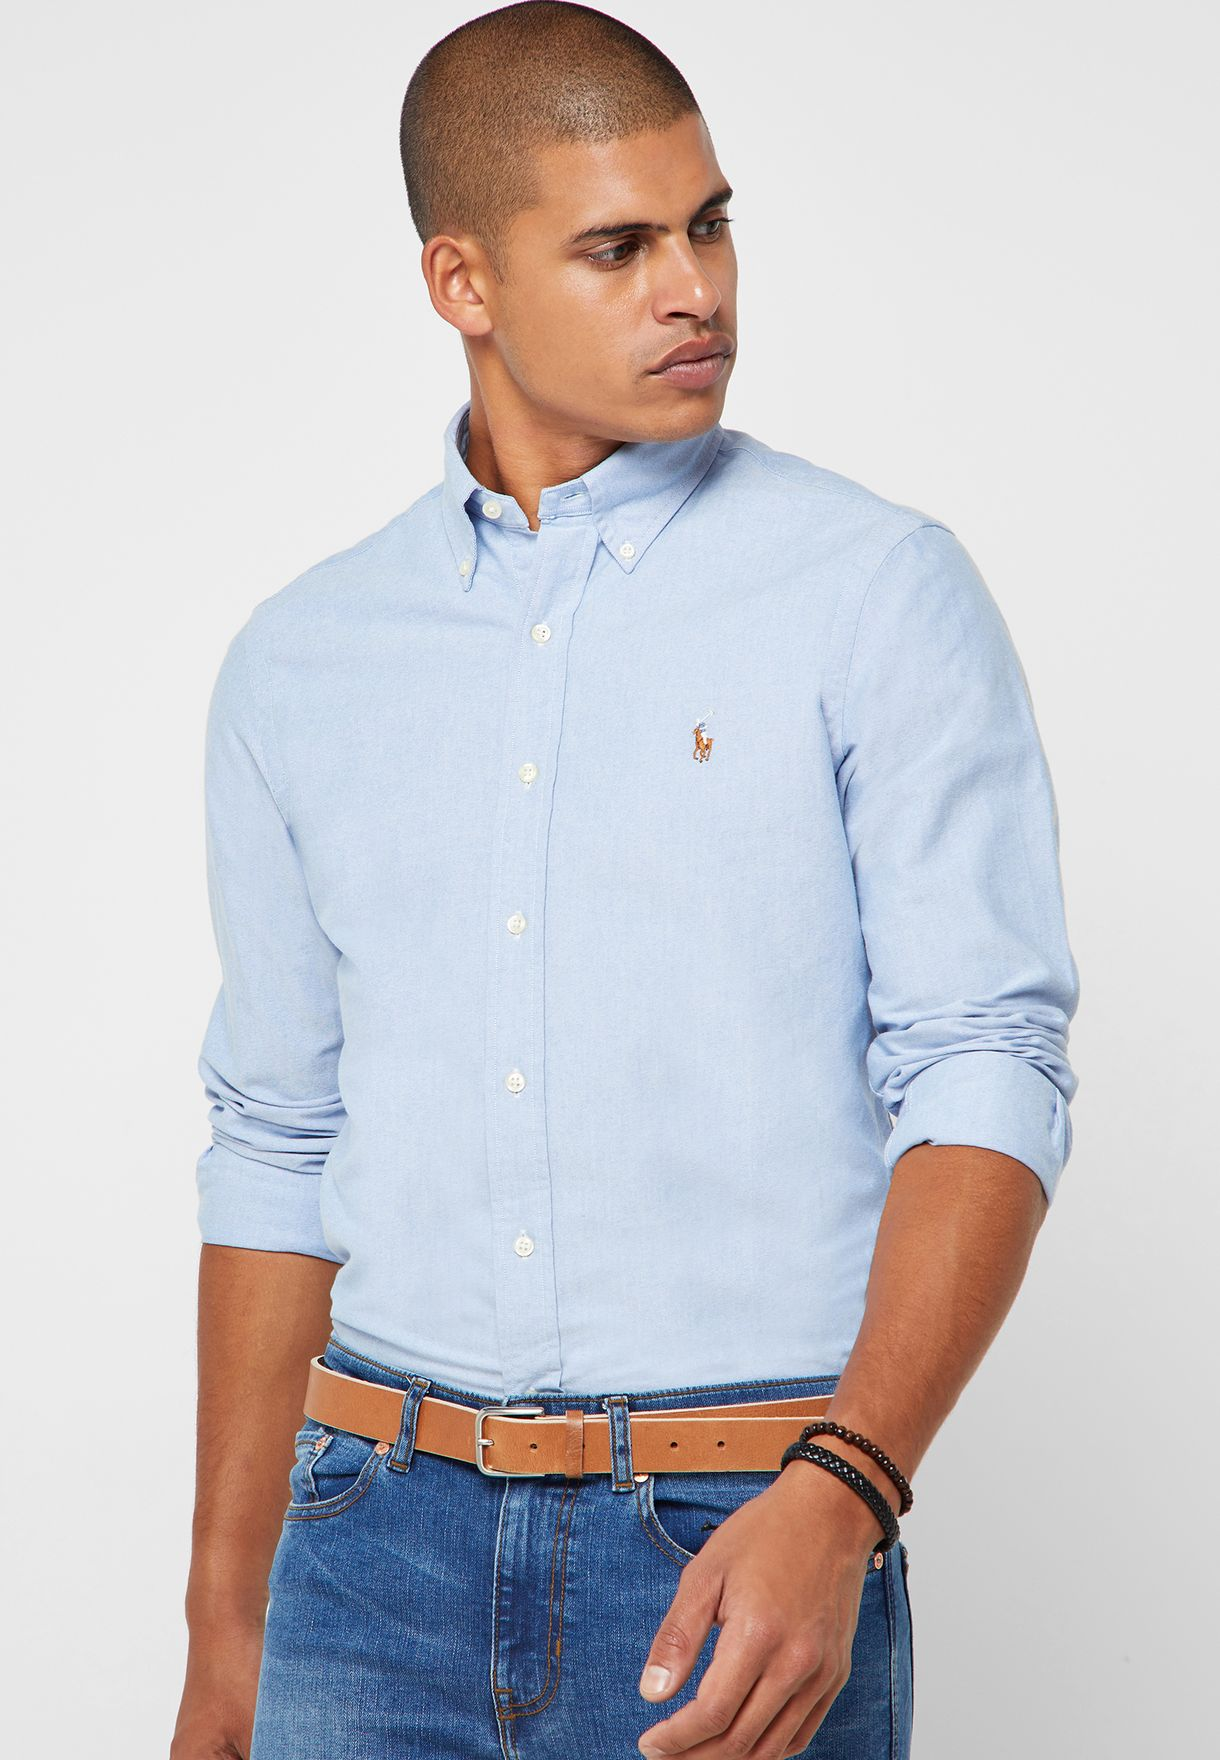 e5c6f98b58 Shop Polo Ralph Lauren blue Classic Fit Oxford Shirt 710548535002 ...